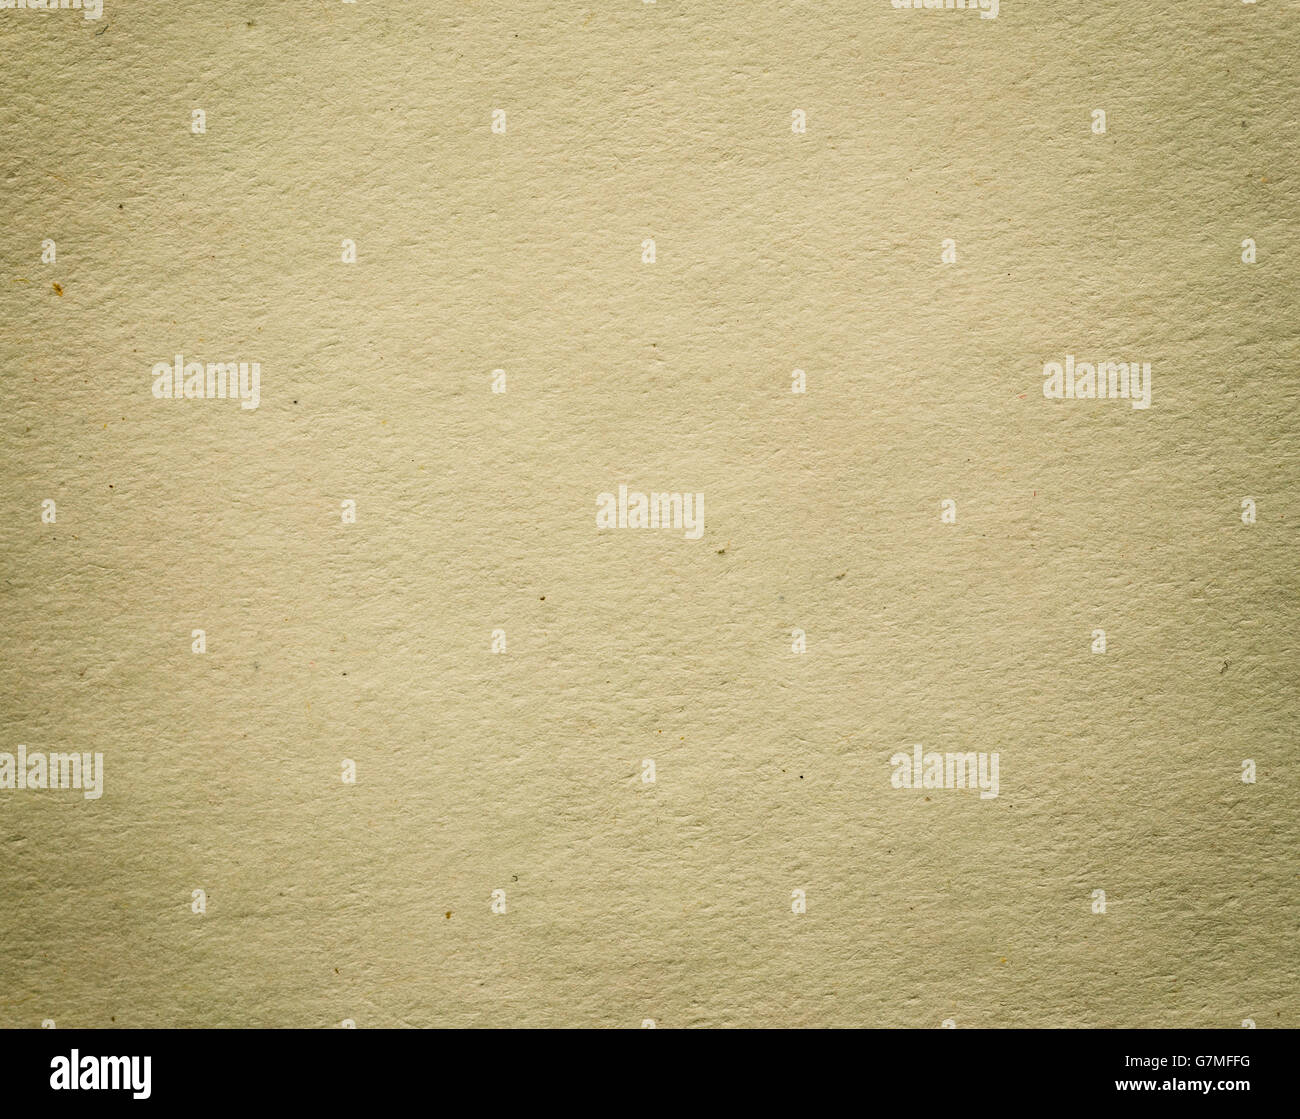 Old paper background from books page design element - Stock Image